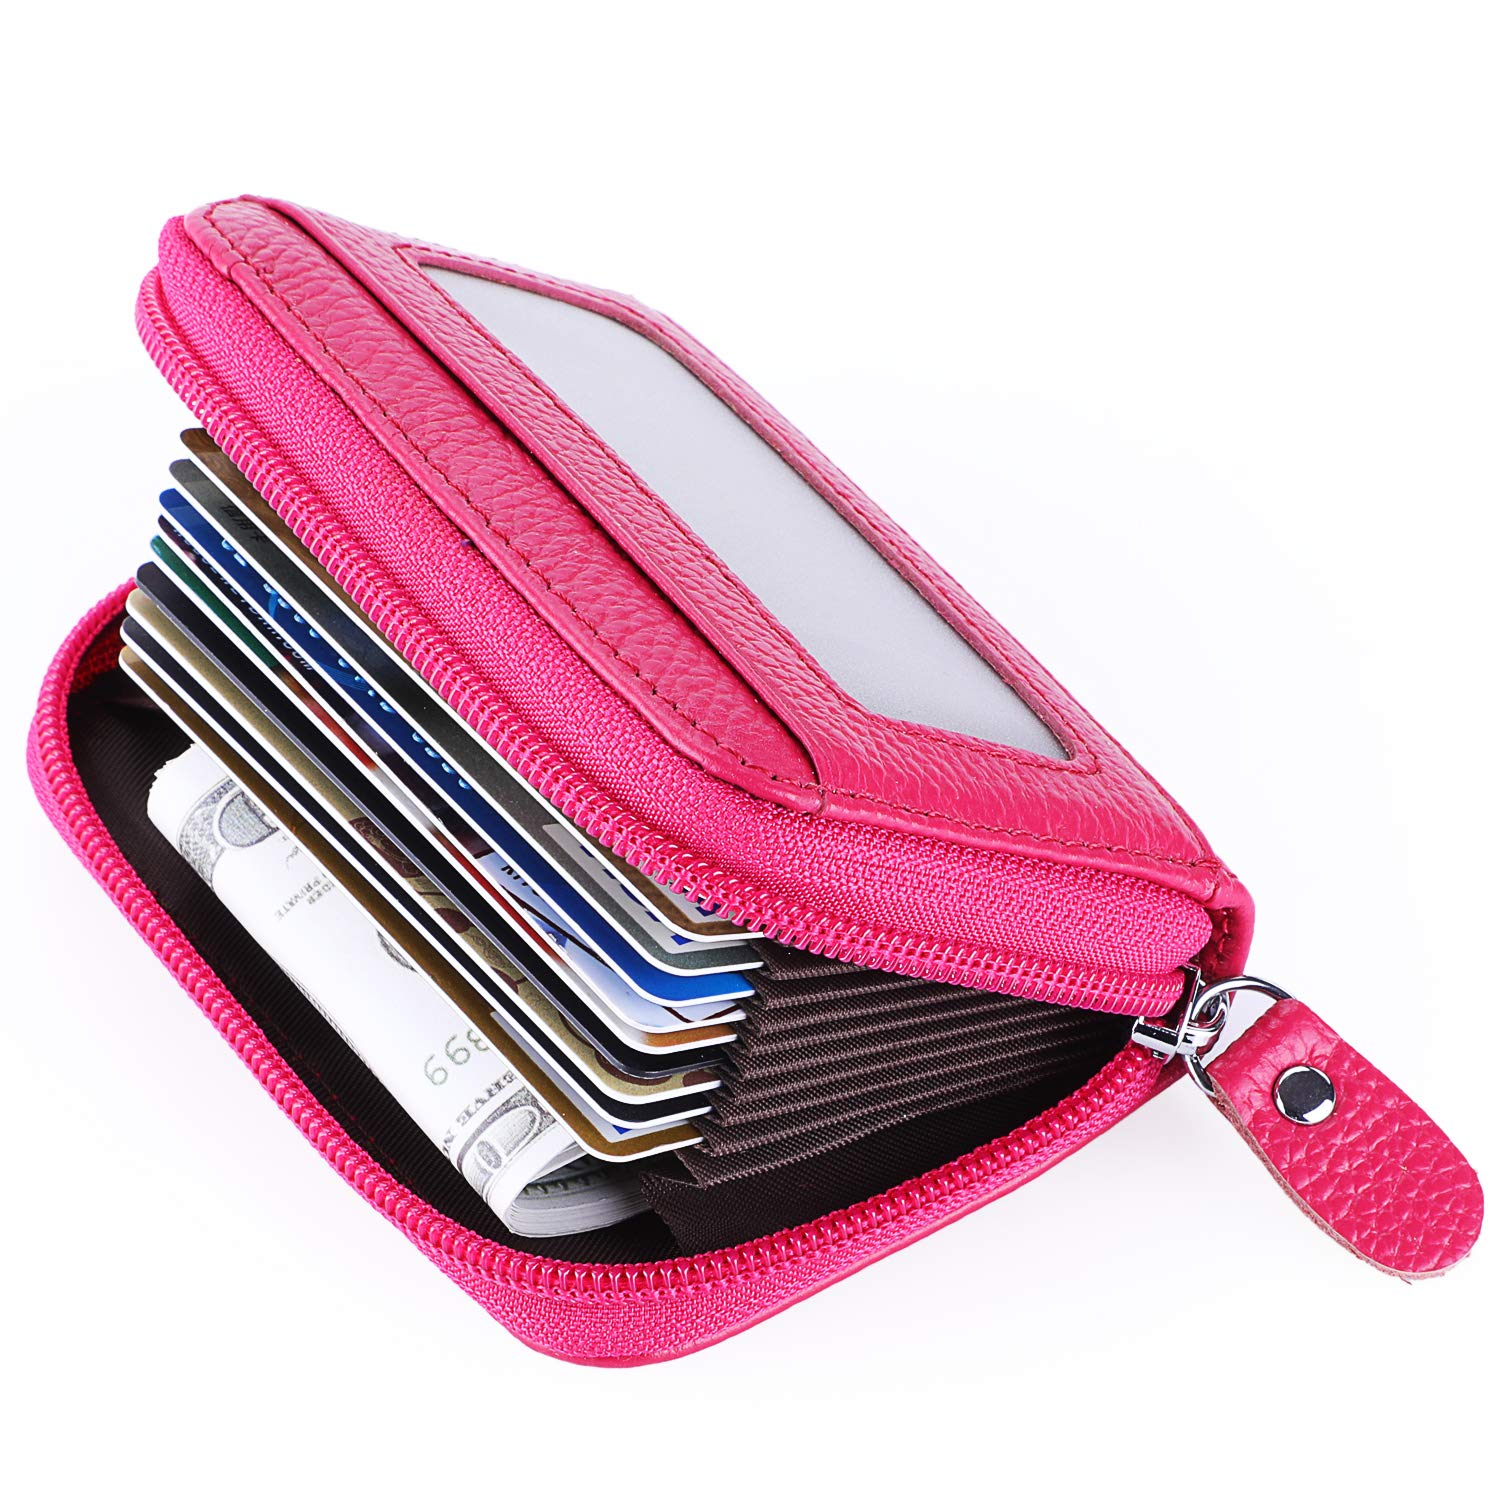 a6d9ab20f17 Best Rated in Women s Card Cases   Helpful Customer Reviews - Amazon.com